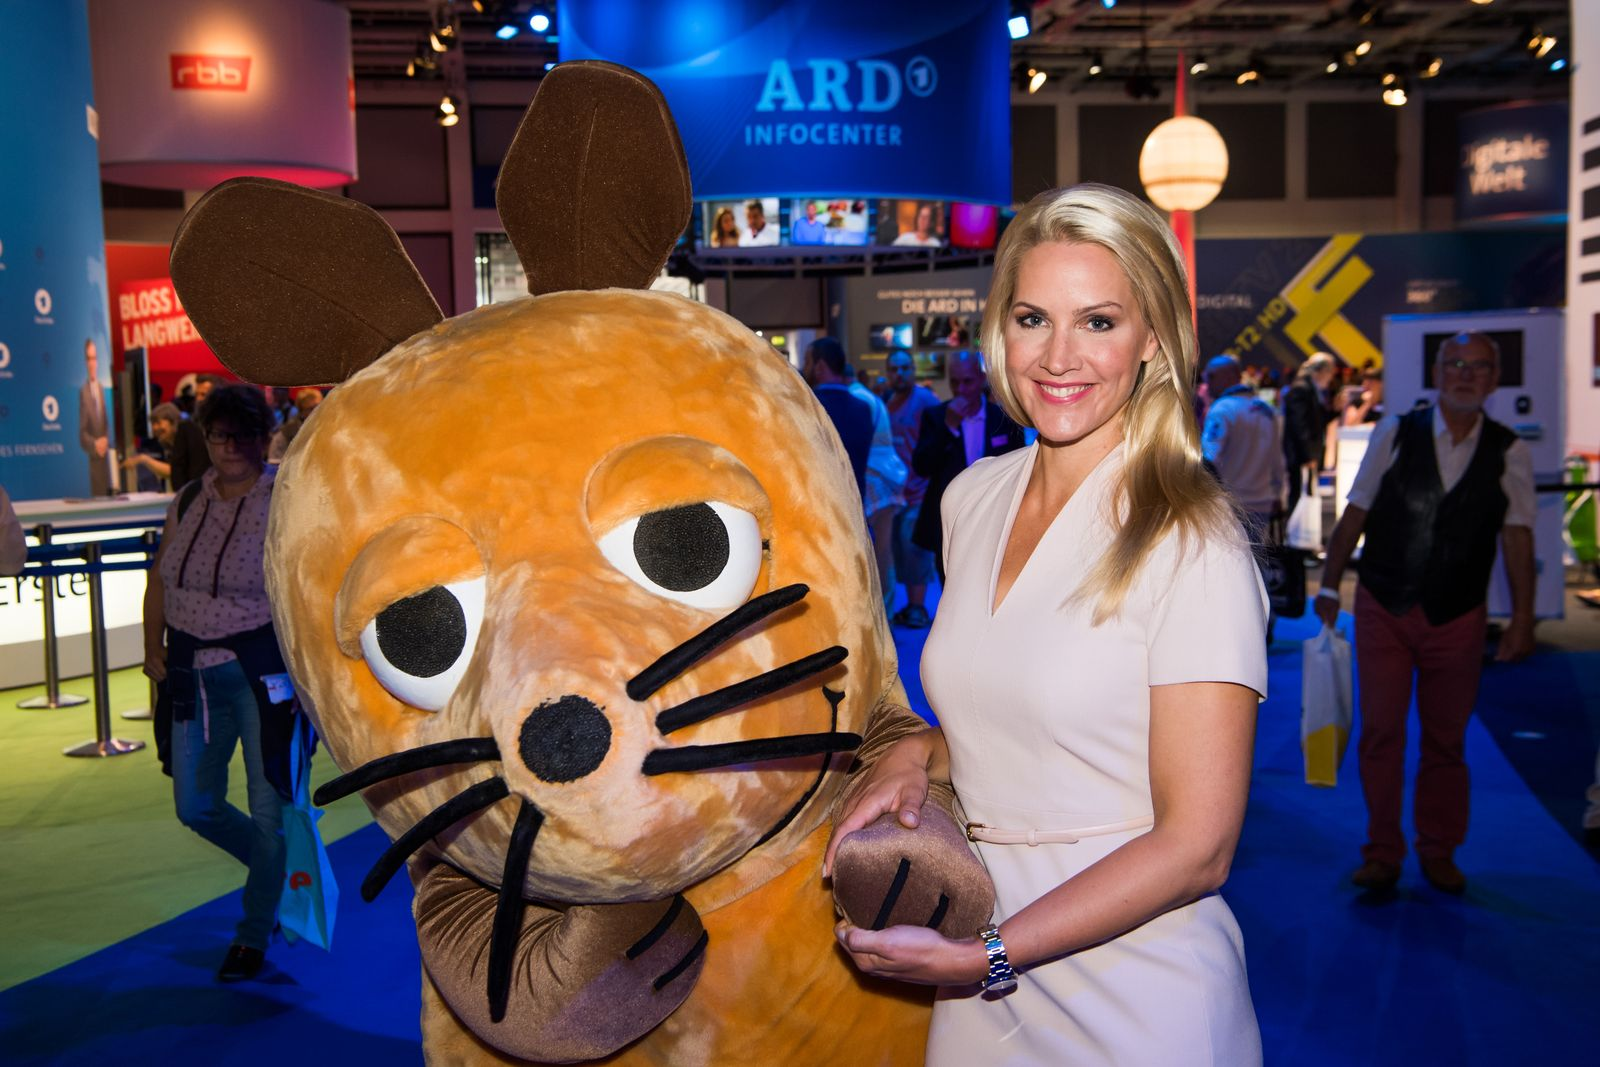 Celebrities Visit ARD Stand At 2017 IFA Tech Fair